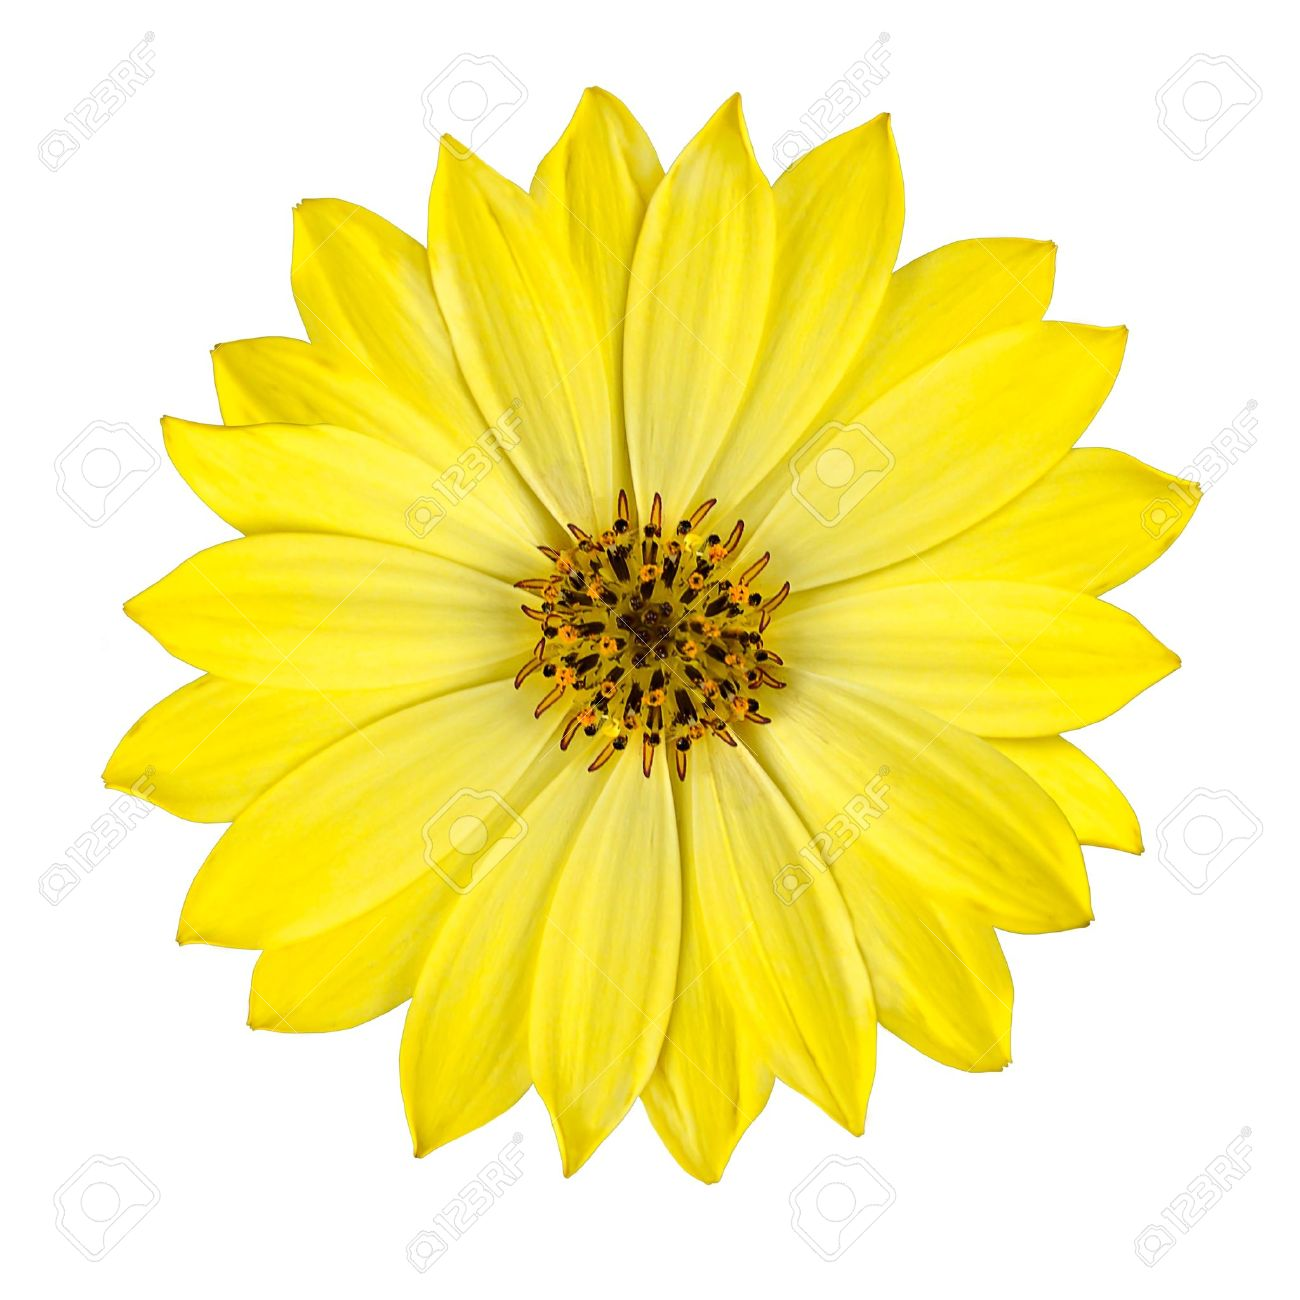 Fresh yellow osteospermum daisy flower isolated on white background fresh yellow osteospermum daisy flower isolated on white background macro closeup stock photo 9394621 mightylinksfo